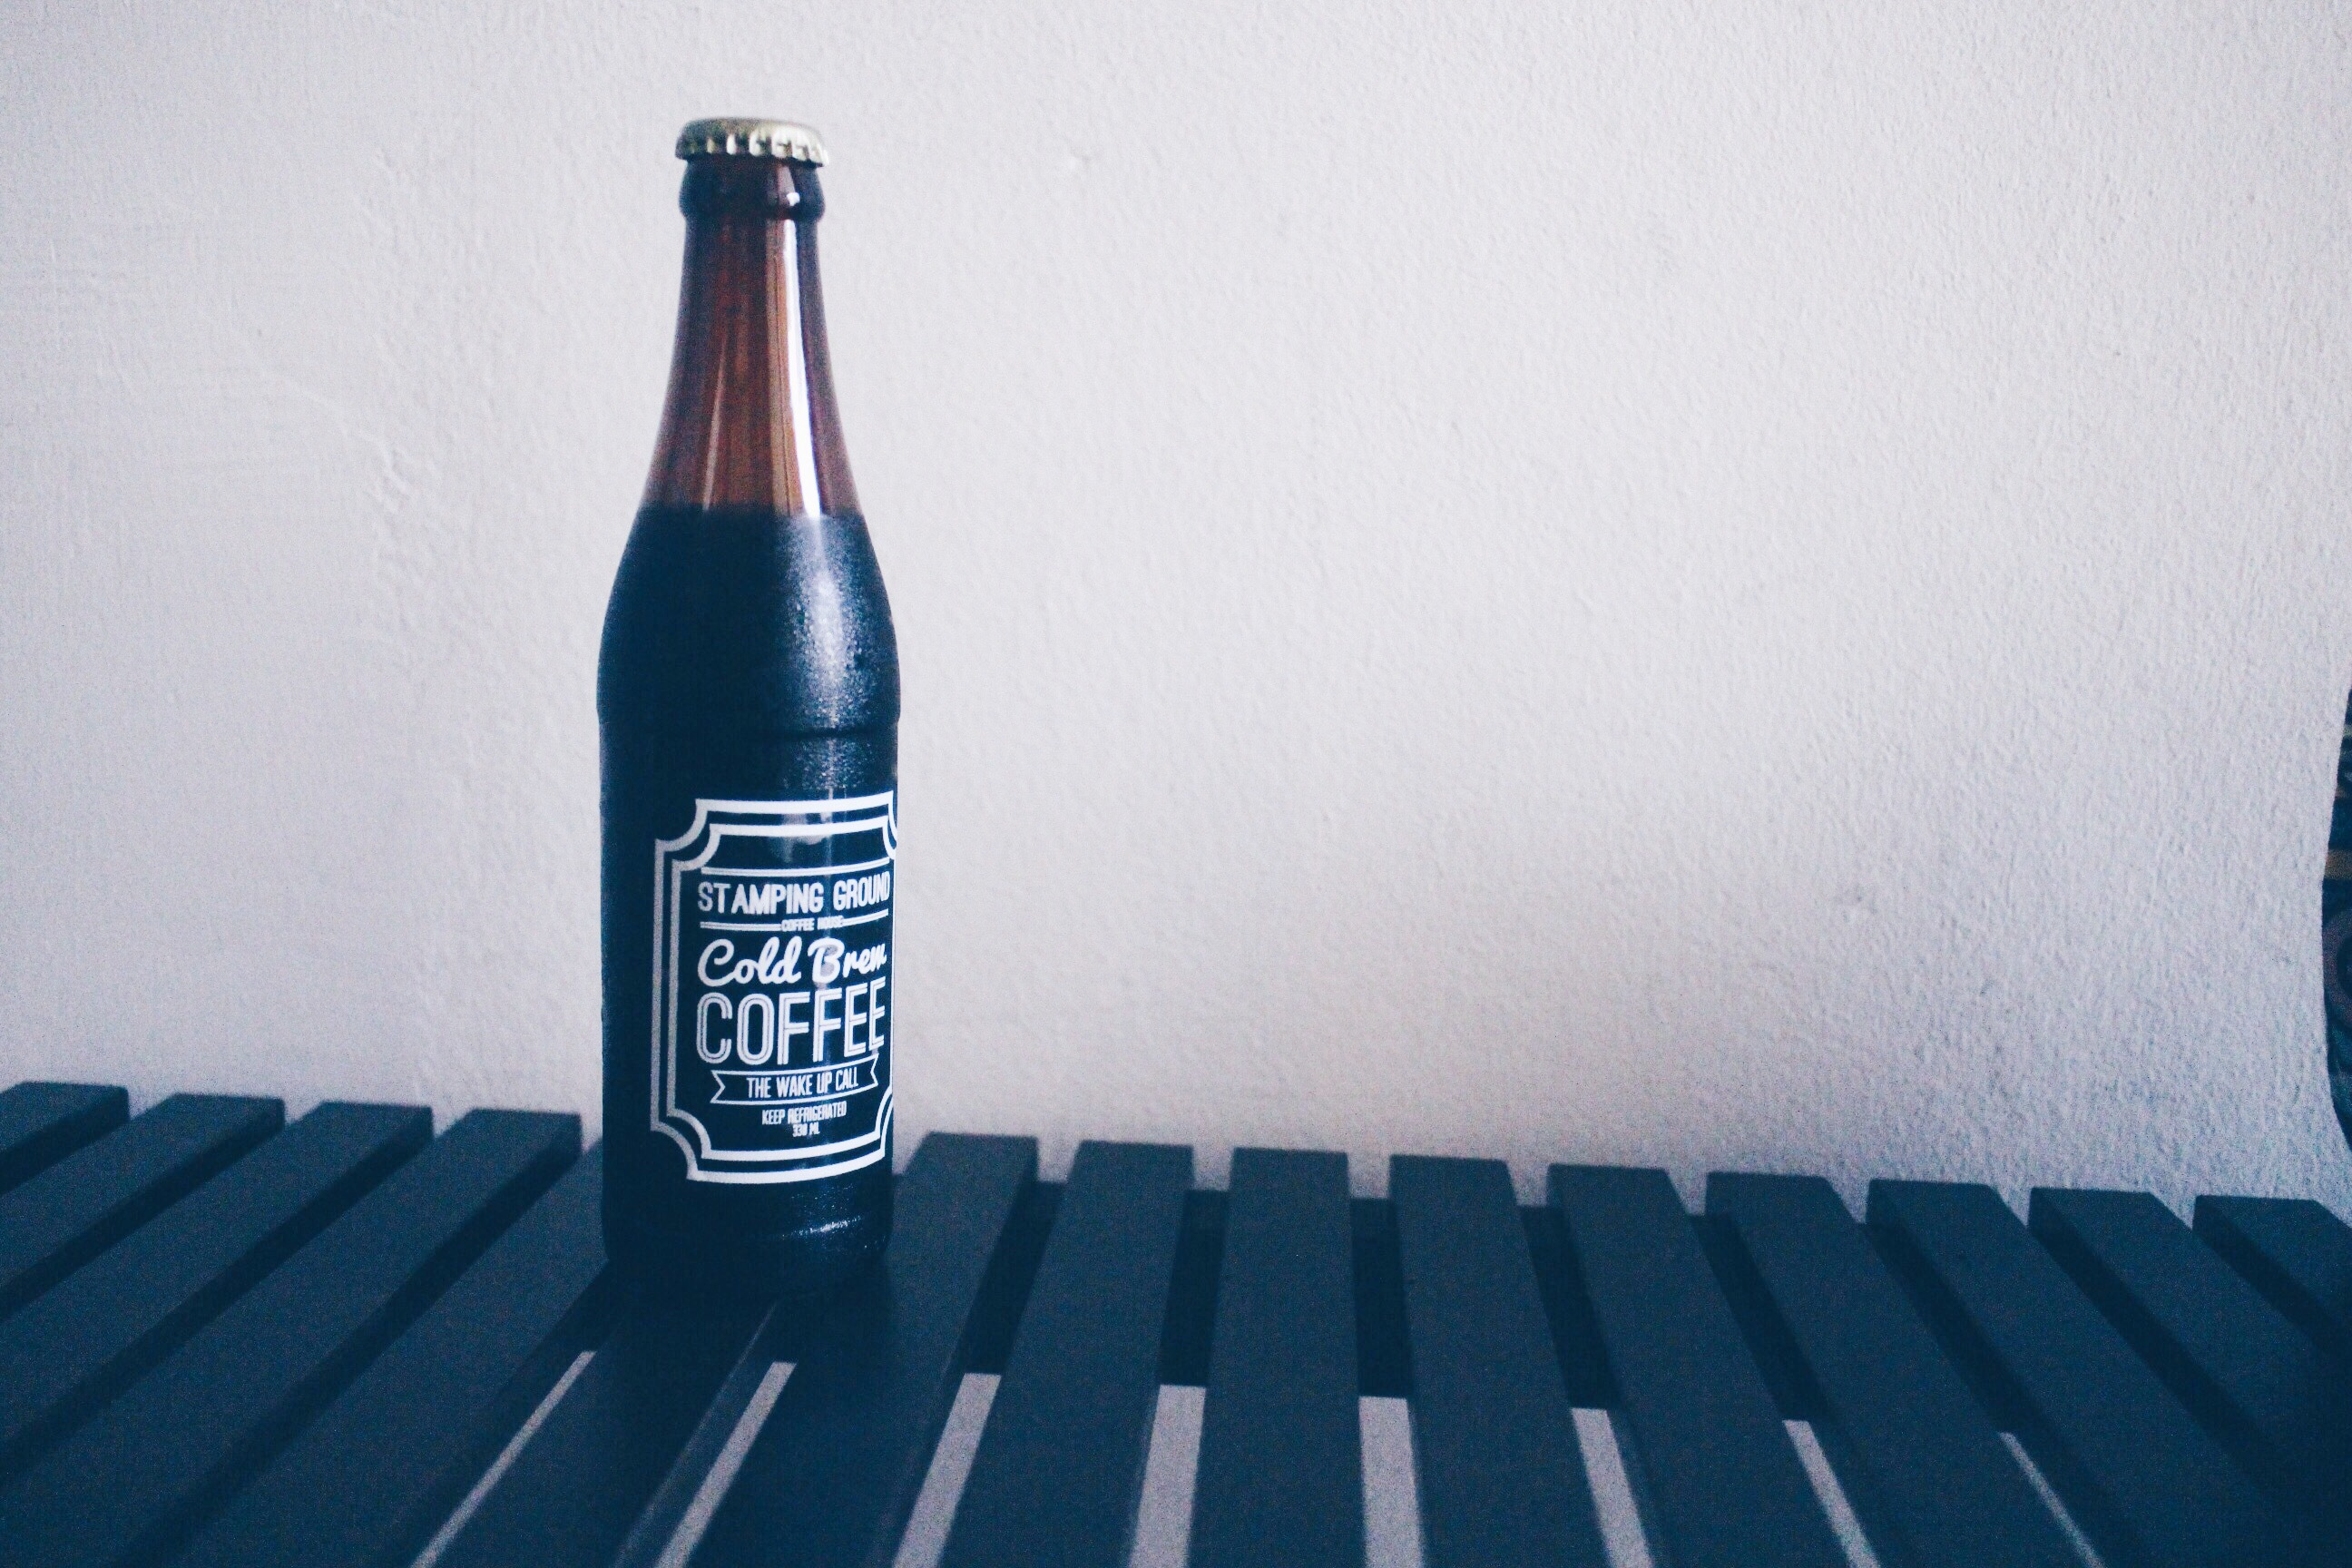 Stamping Ground - cold brew